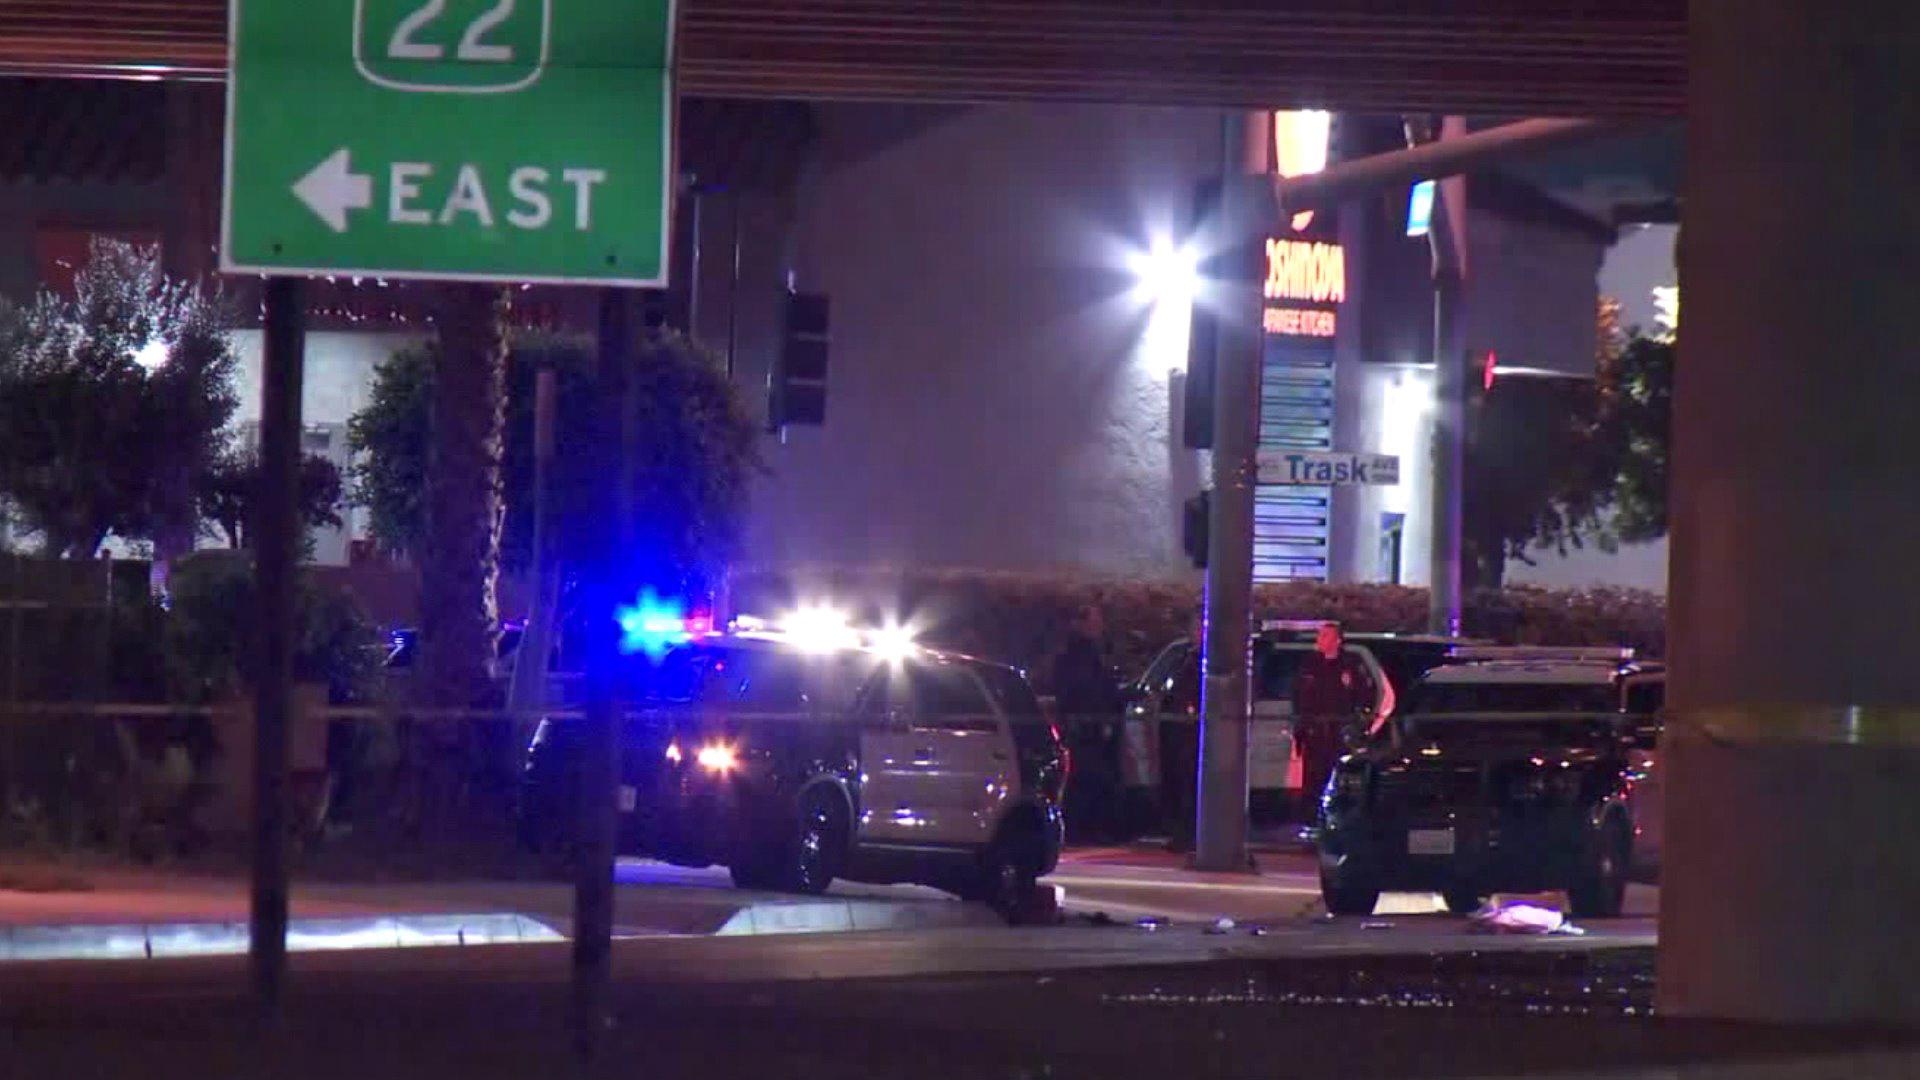 Authorities investigate a shooting in Garden Grove on Feb. 26, 2020. (KTLA)